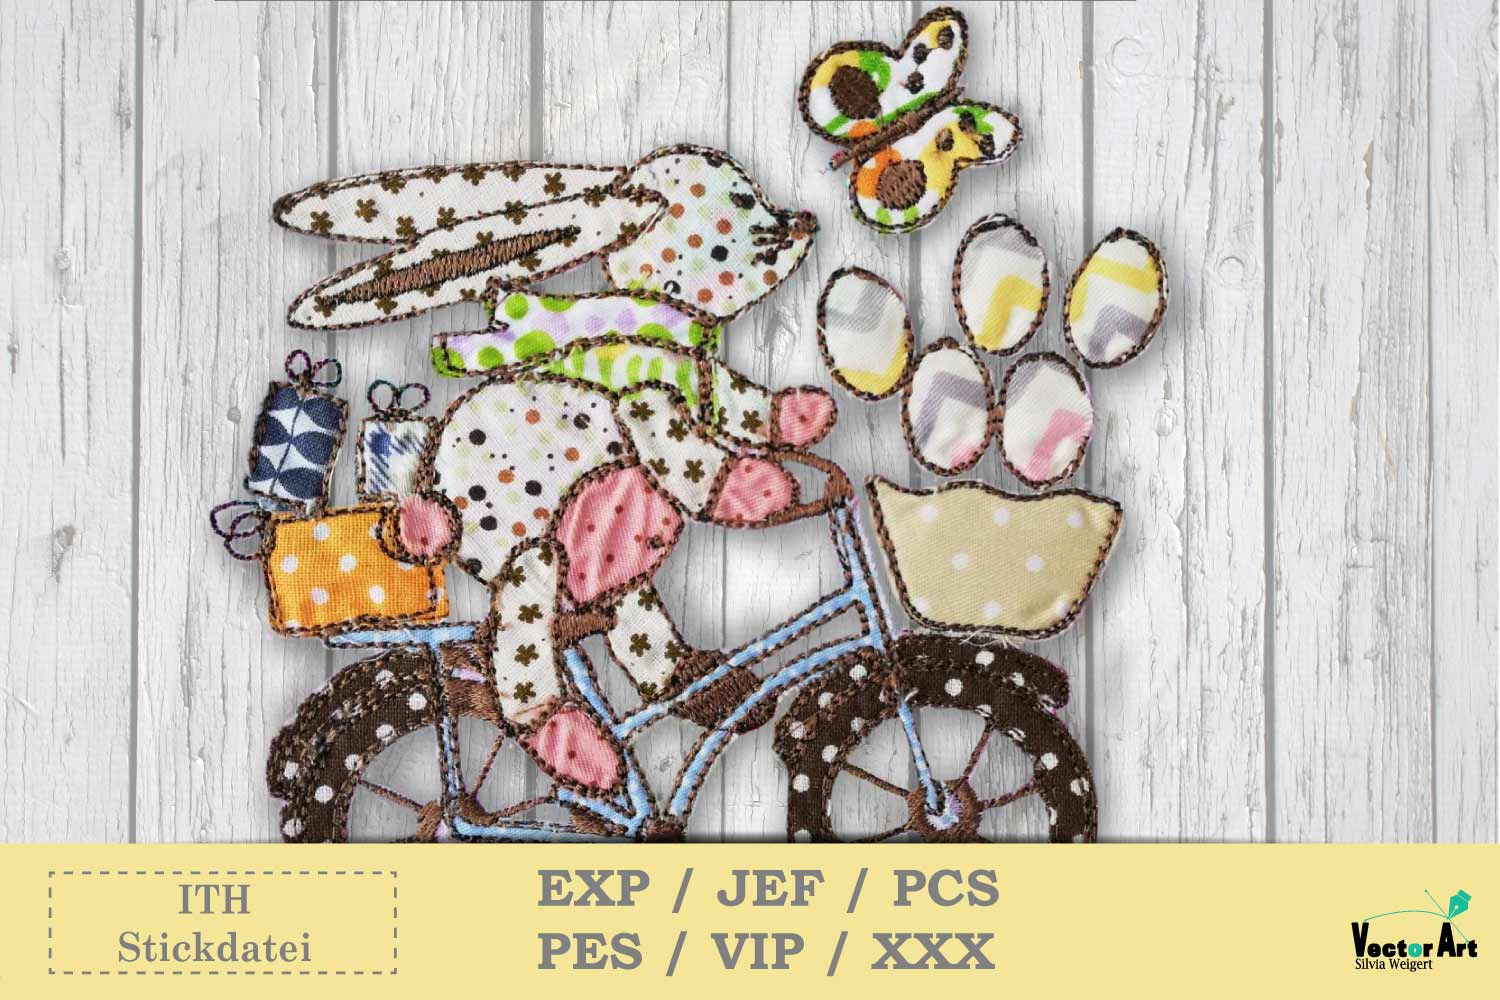 ITH Easter Bundle - Machine Embroidery Files - 10 Projects example image 10